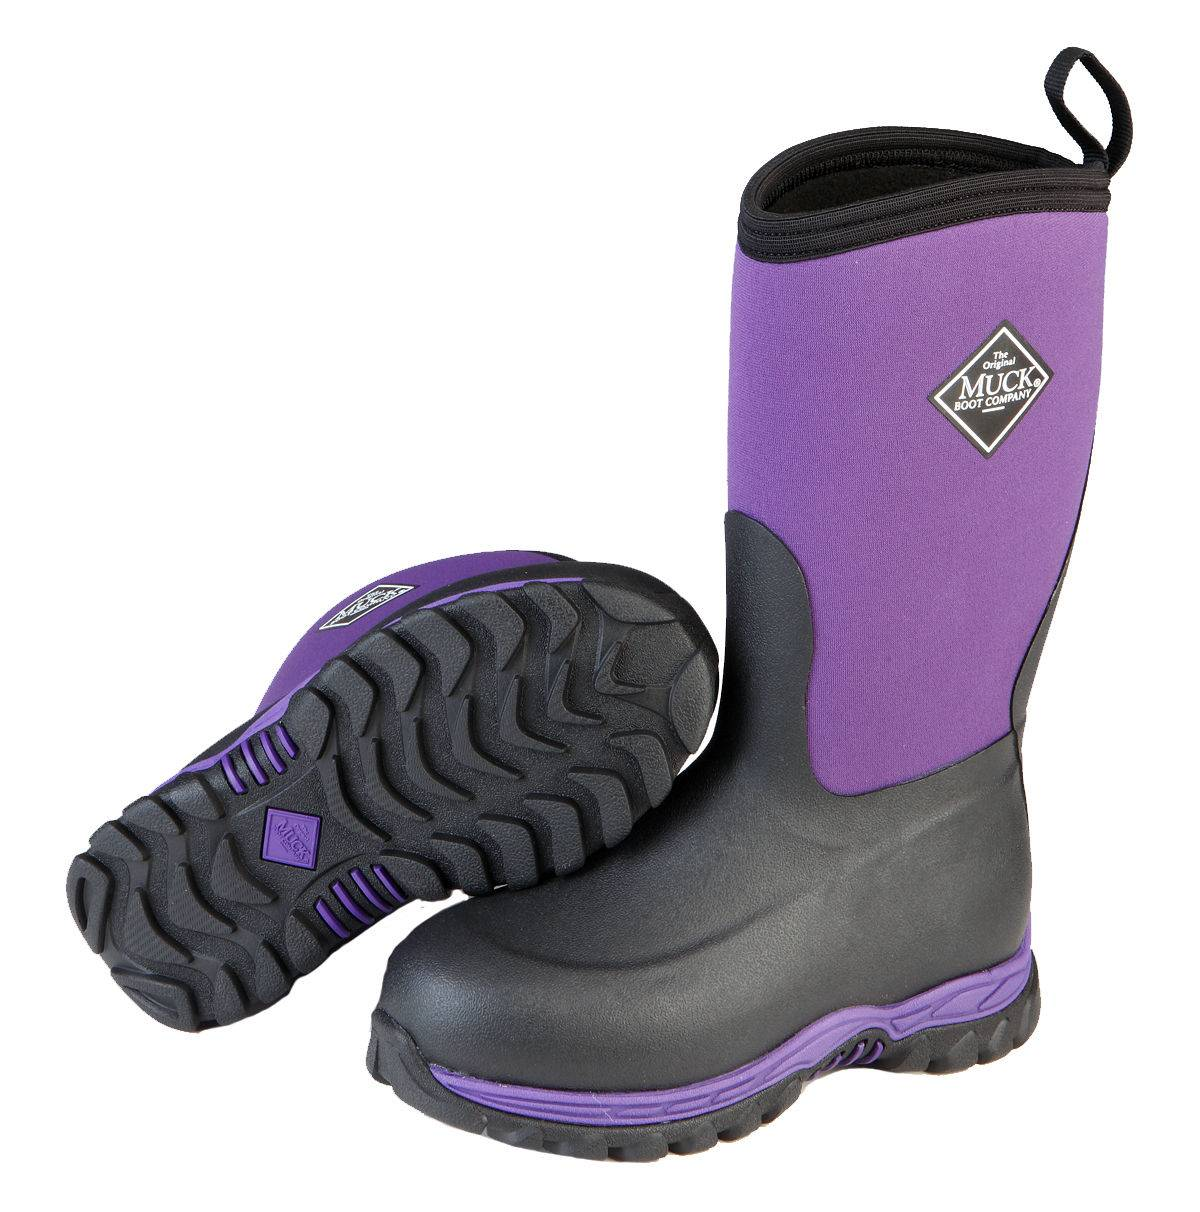 Muck Boots Rugged II - Kids - Black/Purple